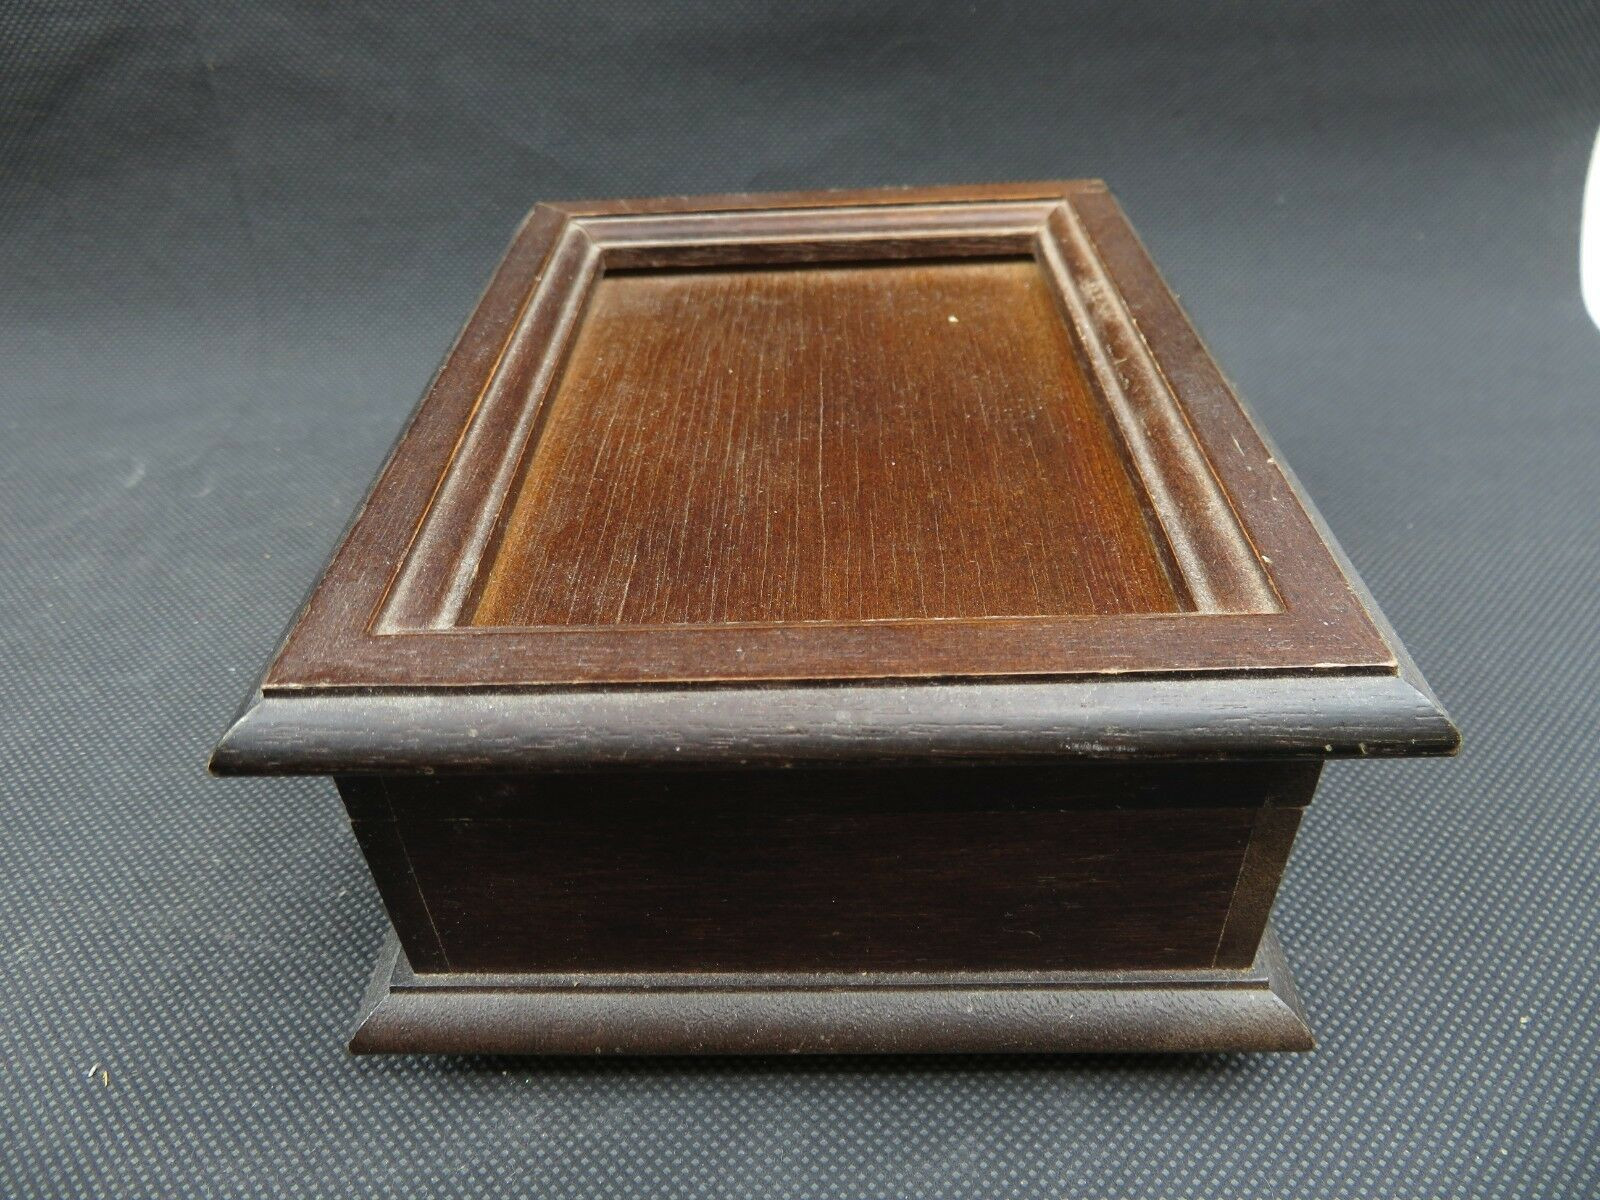 Primary image for Vintage wood music box The San Francisco Music Box Company Mid Century deco